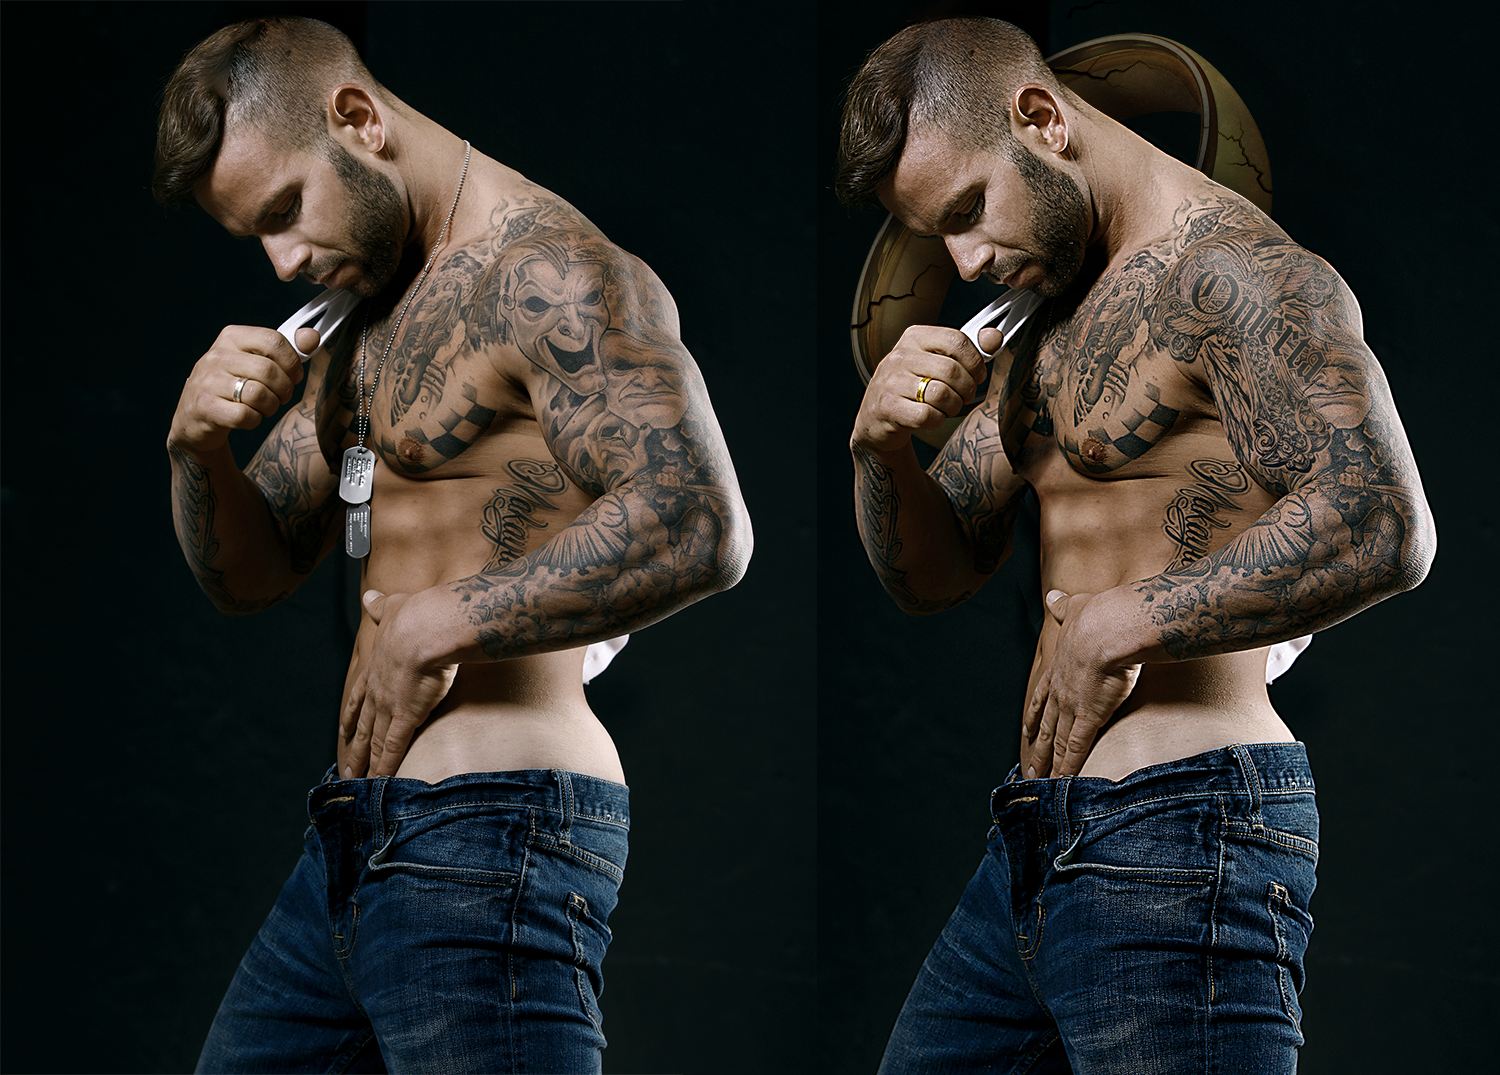 Hair retouching, dogtag removal, custom tattoos, jeans adjustment, sharpening & color correction, frequency separation, illustrated ring backdrop